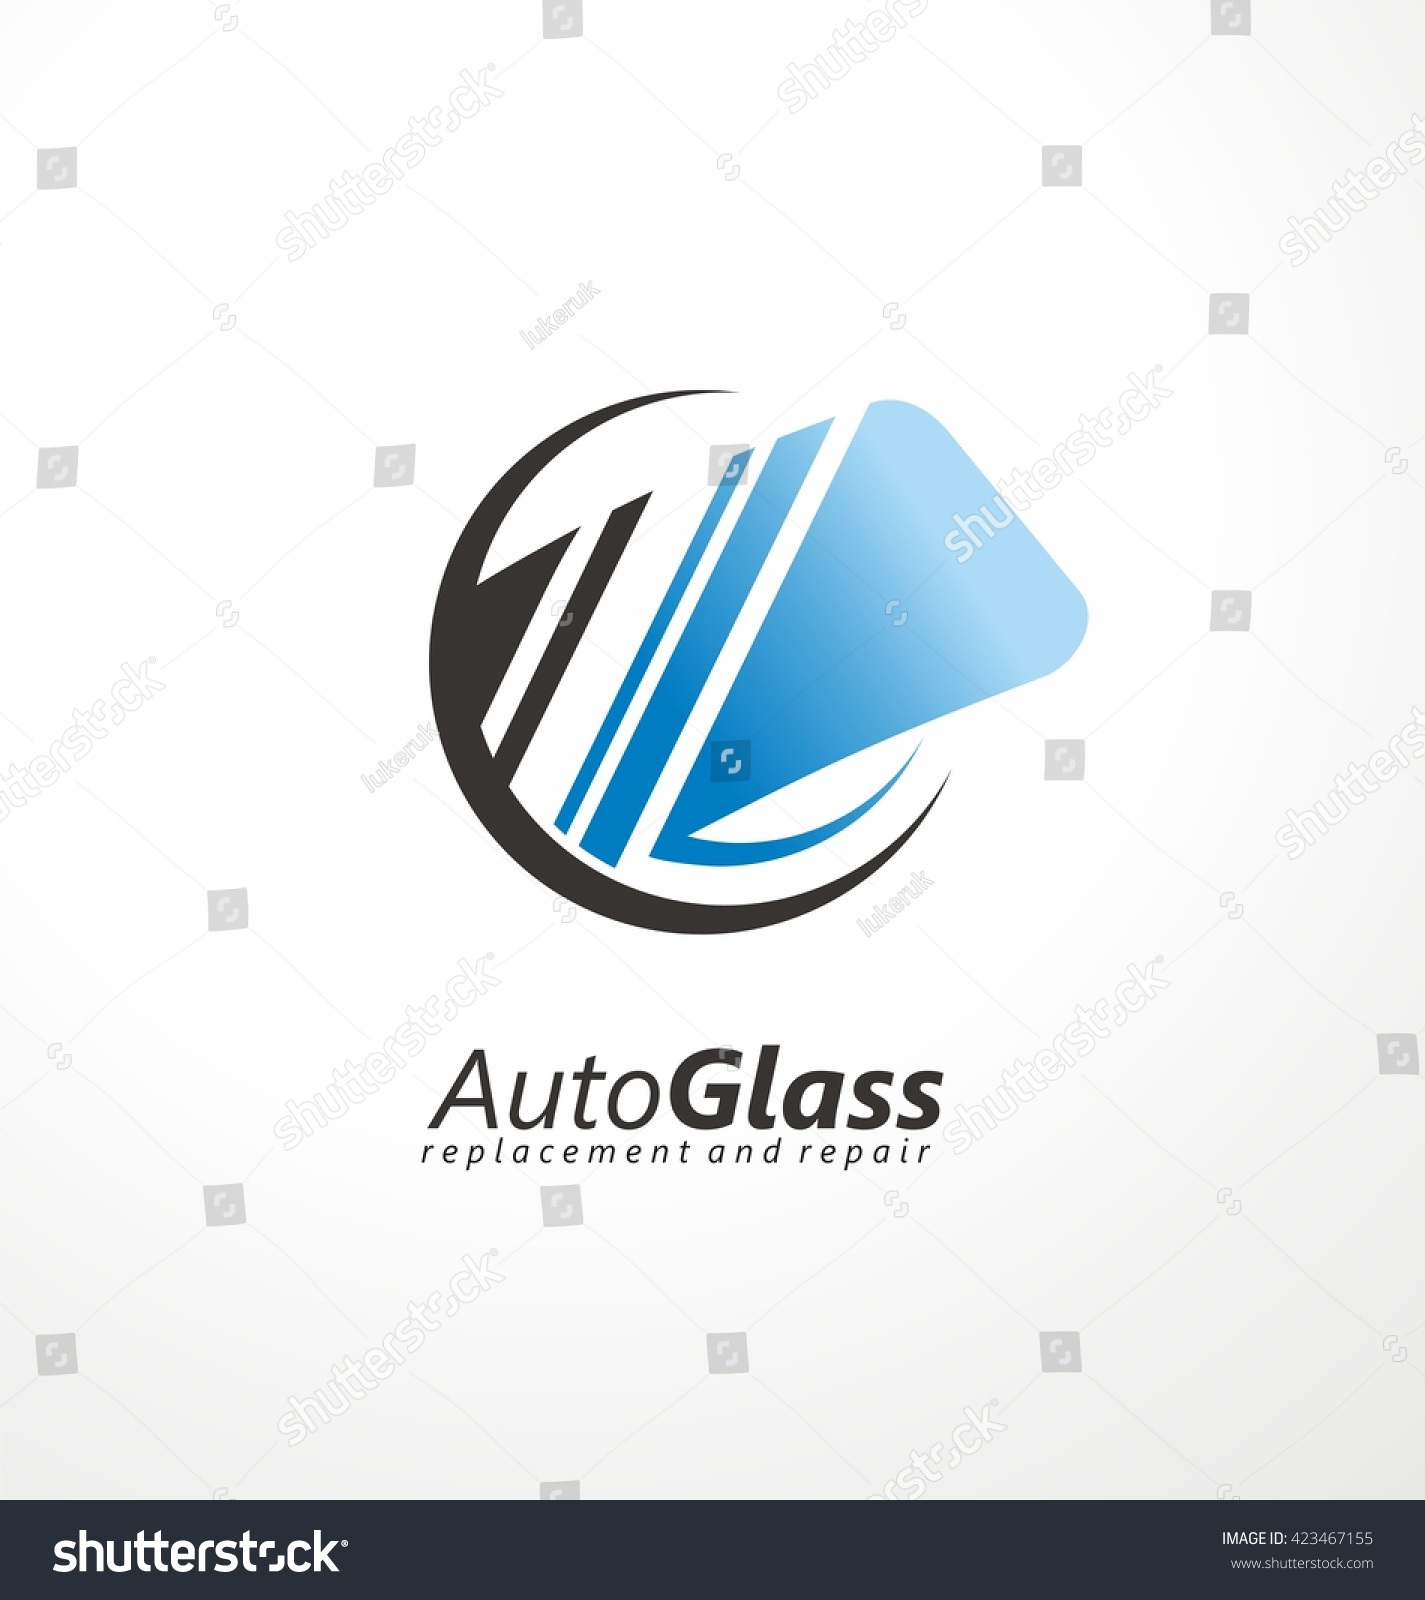 auto glass creative logo design idea windshield vector symbol concept service and repair - Logo Design Idea